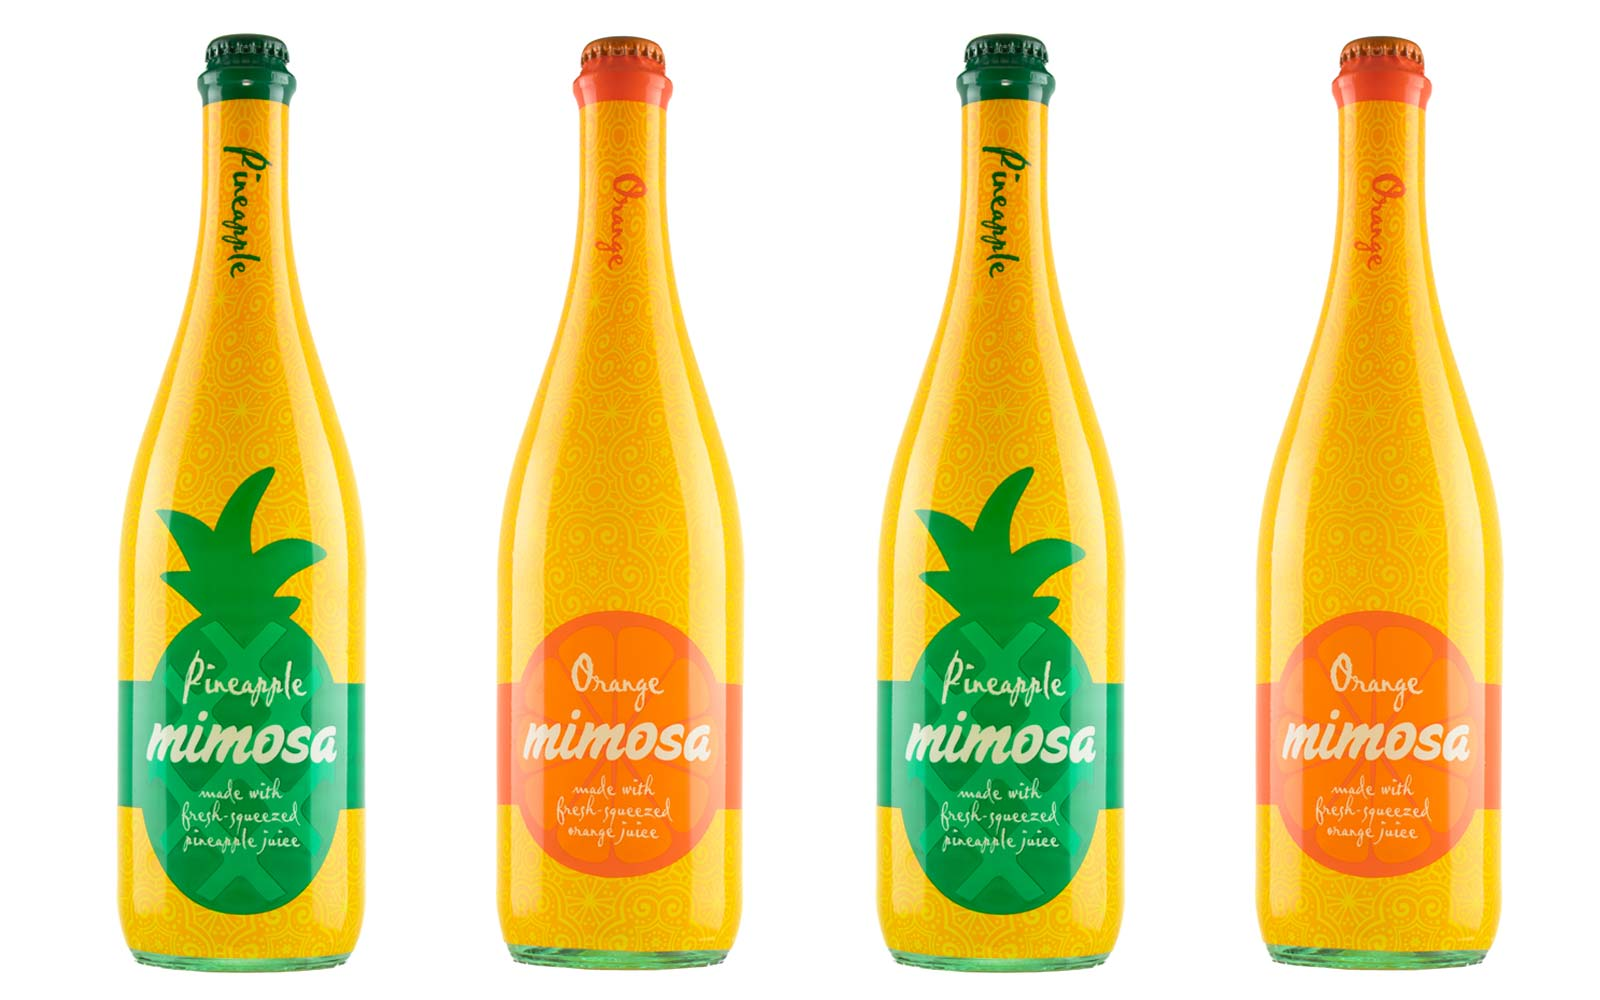 Aldi Is Bringing Back Their Bottled Mimosas — and They Now Come in a Pineapple Flavor